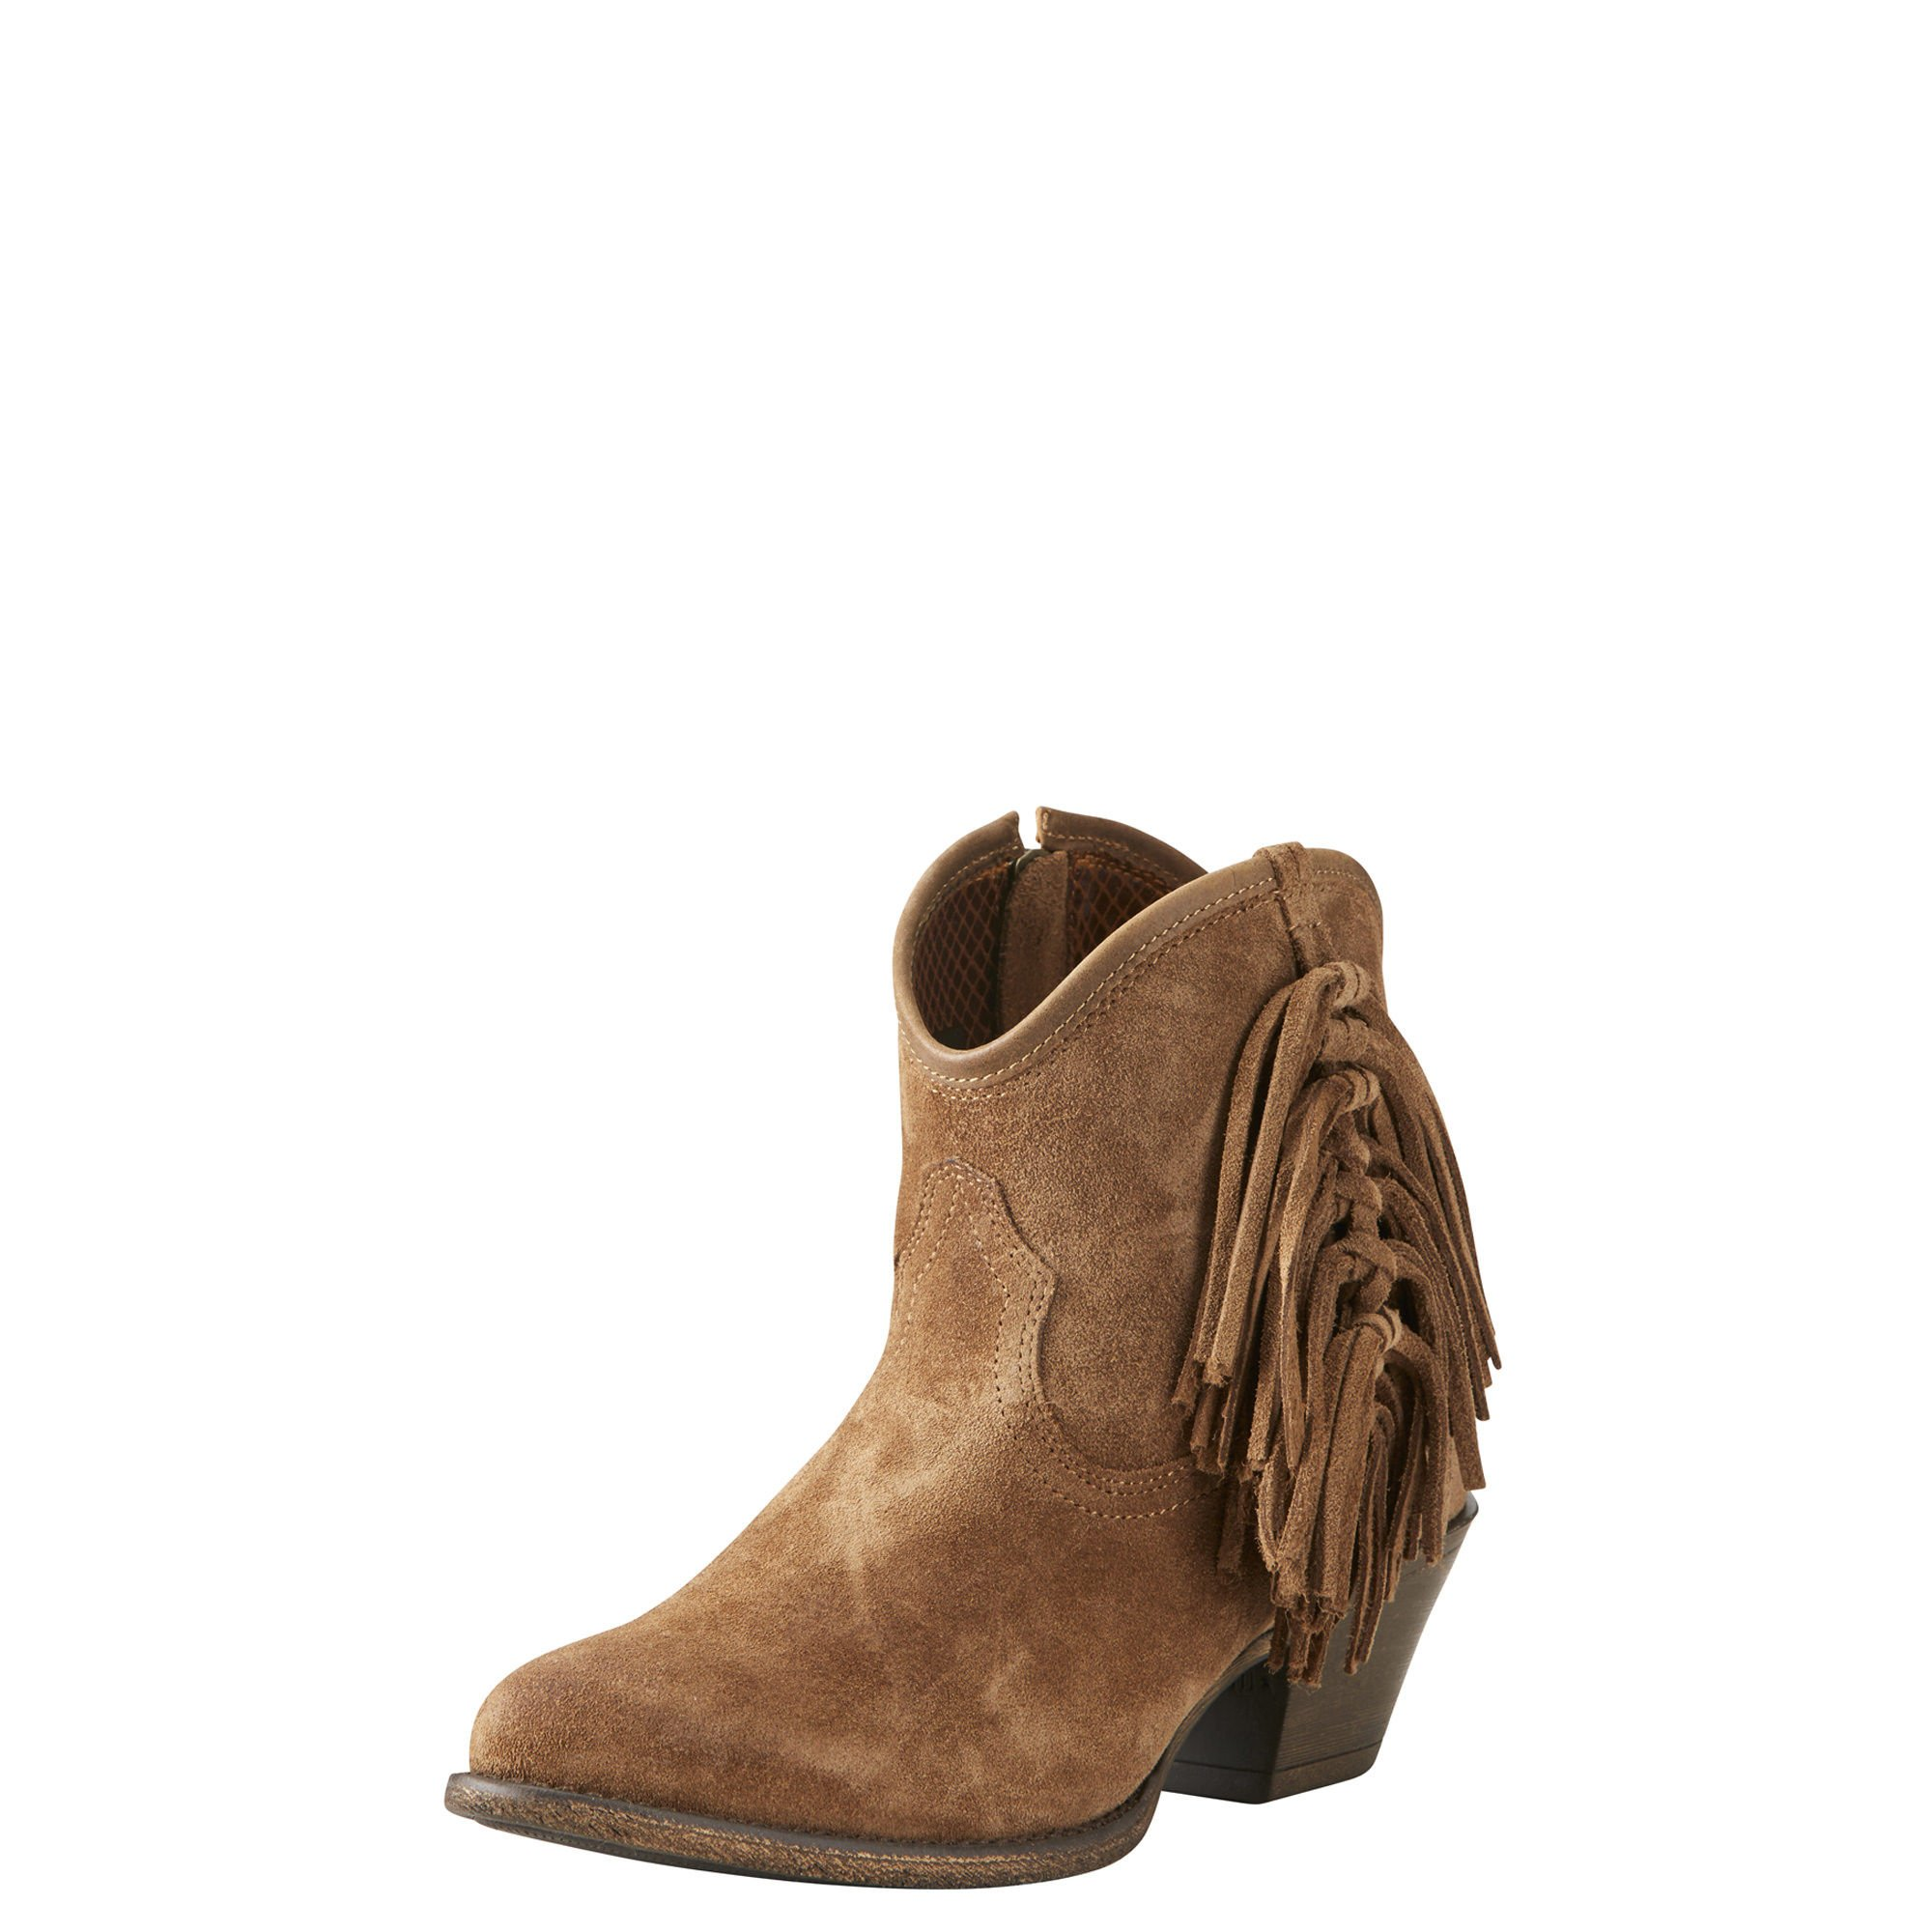 Ariat Women's Duchess Work Boot, Dirty Tan Suede, 9.5 B US by Ariat